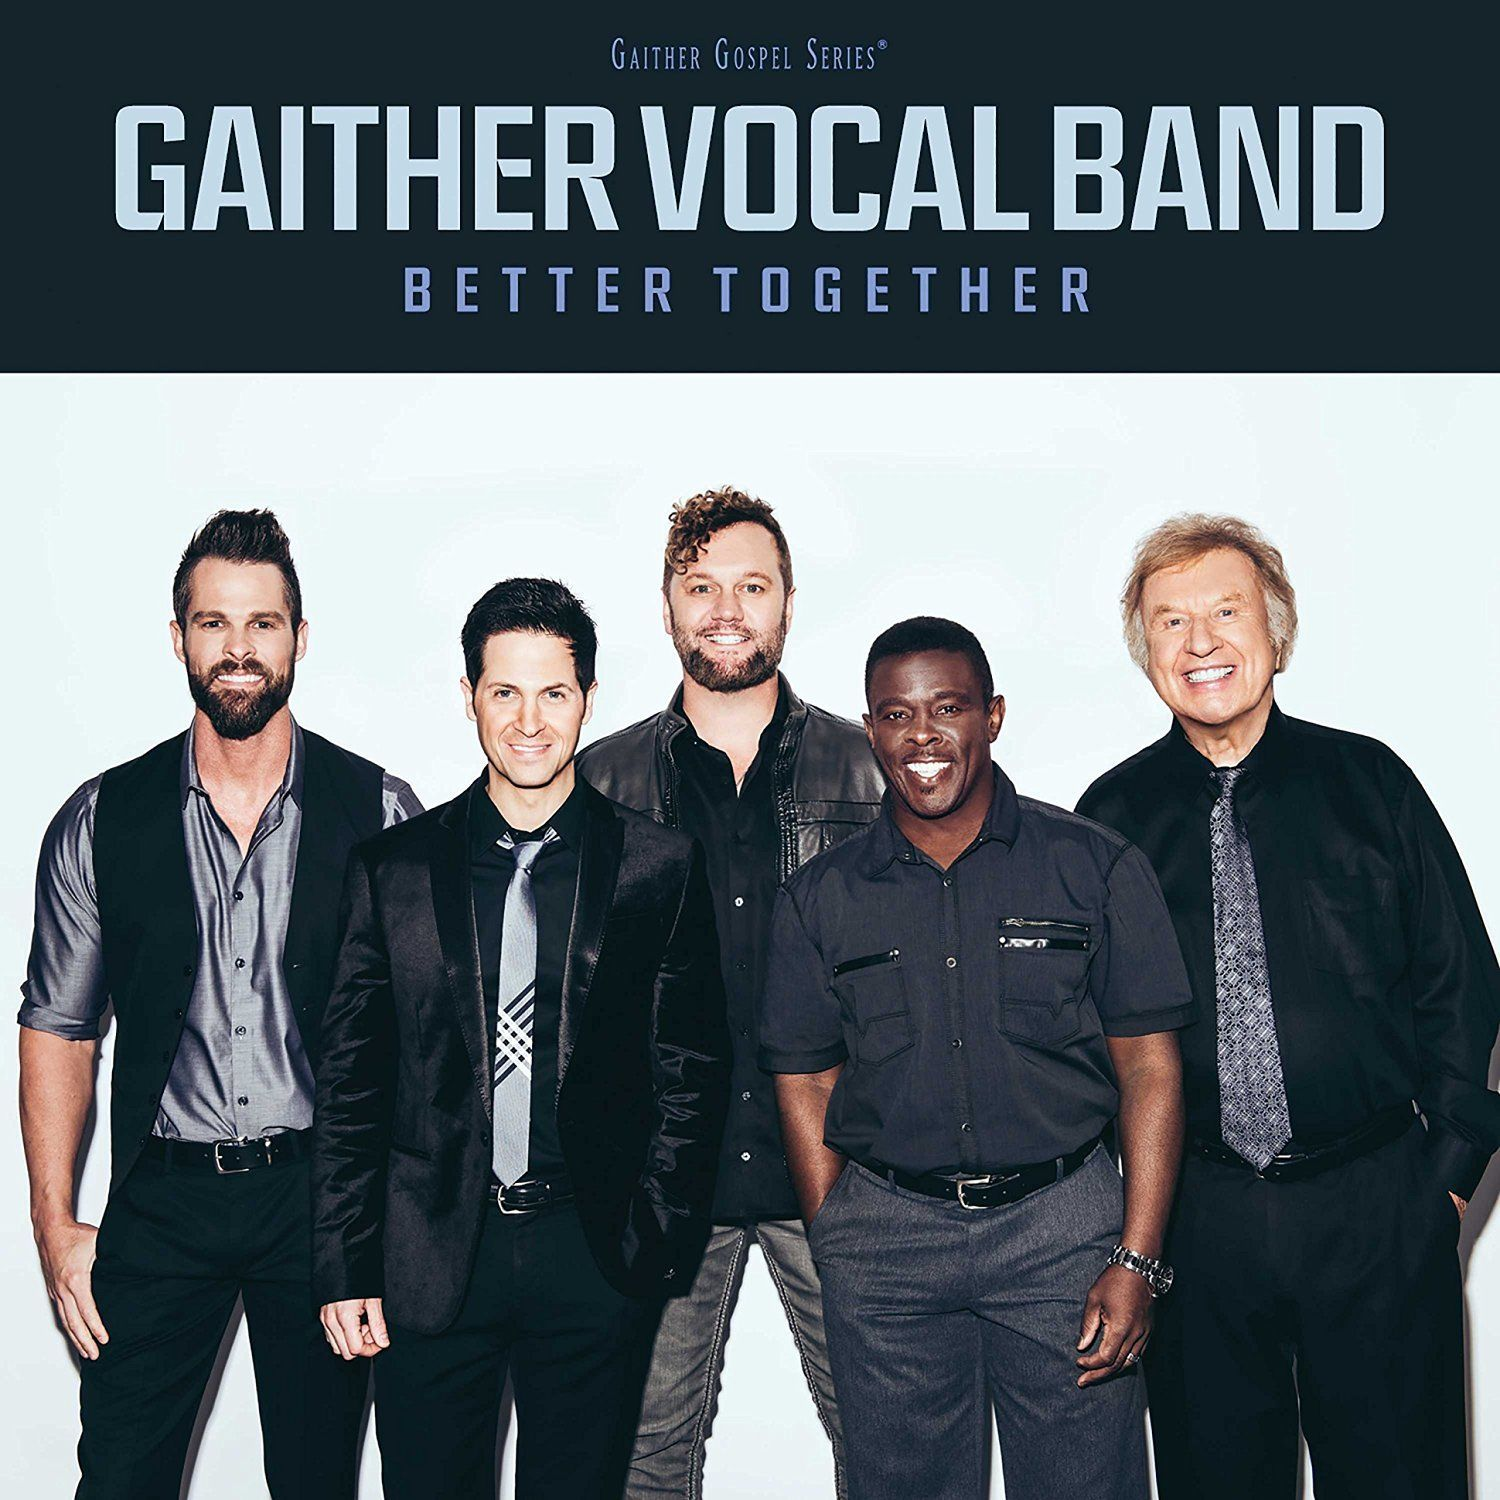 Who are the members of the Gaither Vocal Band?